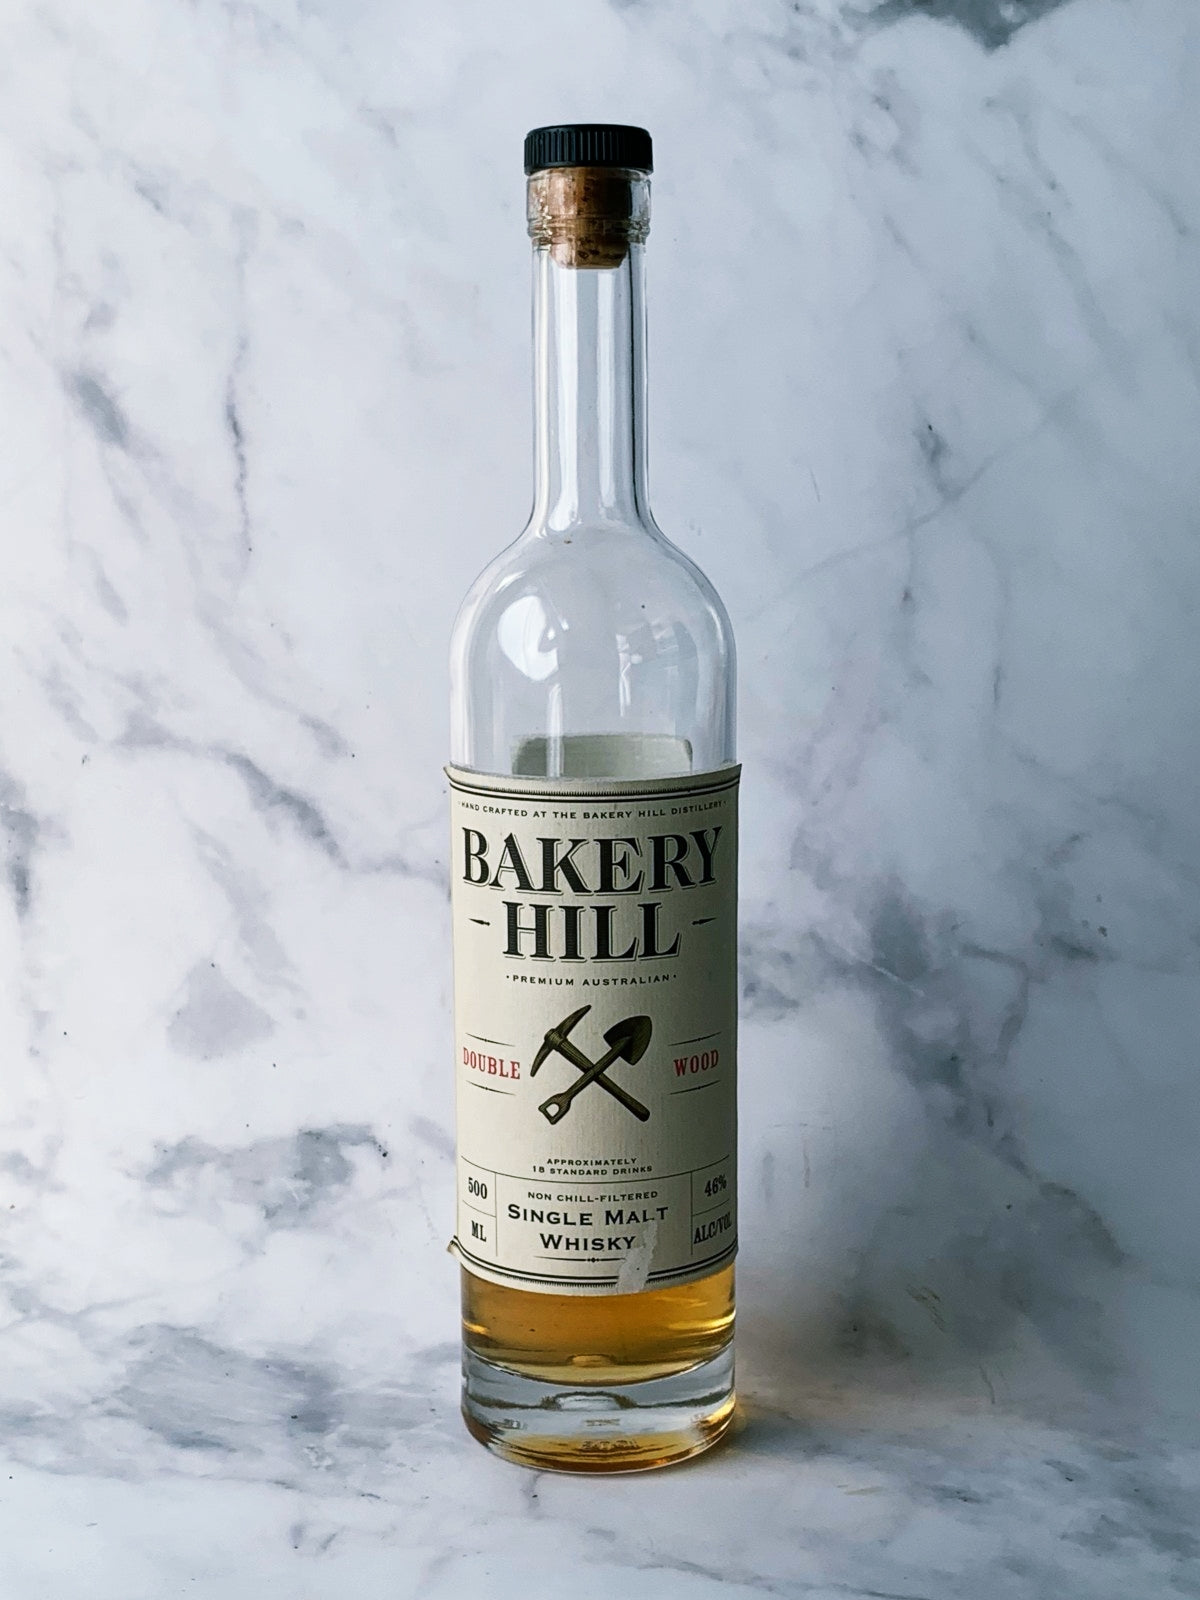 Bakery Hill Double Wood Single Malt Whisky (50ml serve)